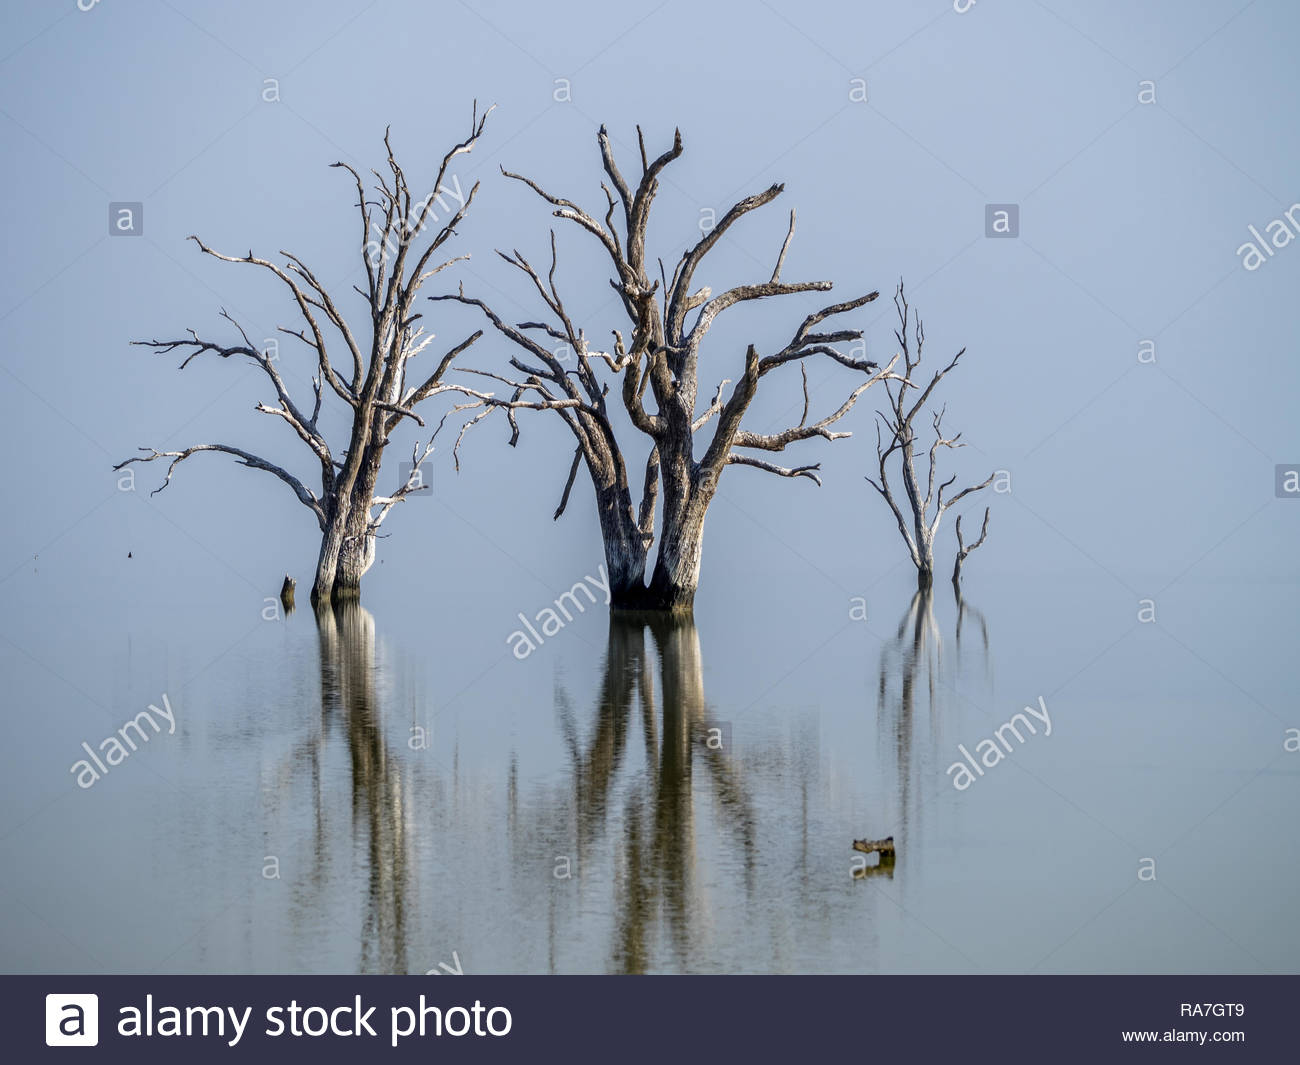 Lake Bonney tree reflections with shimmer on water.  Foggy Barmera morning, Sth Australia. - Stock Image